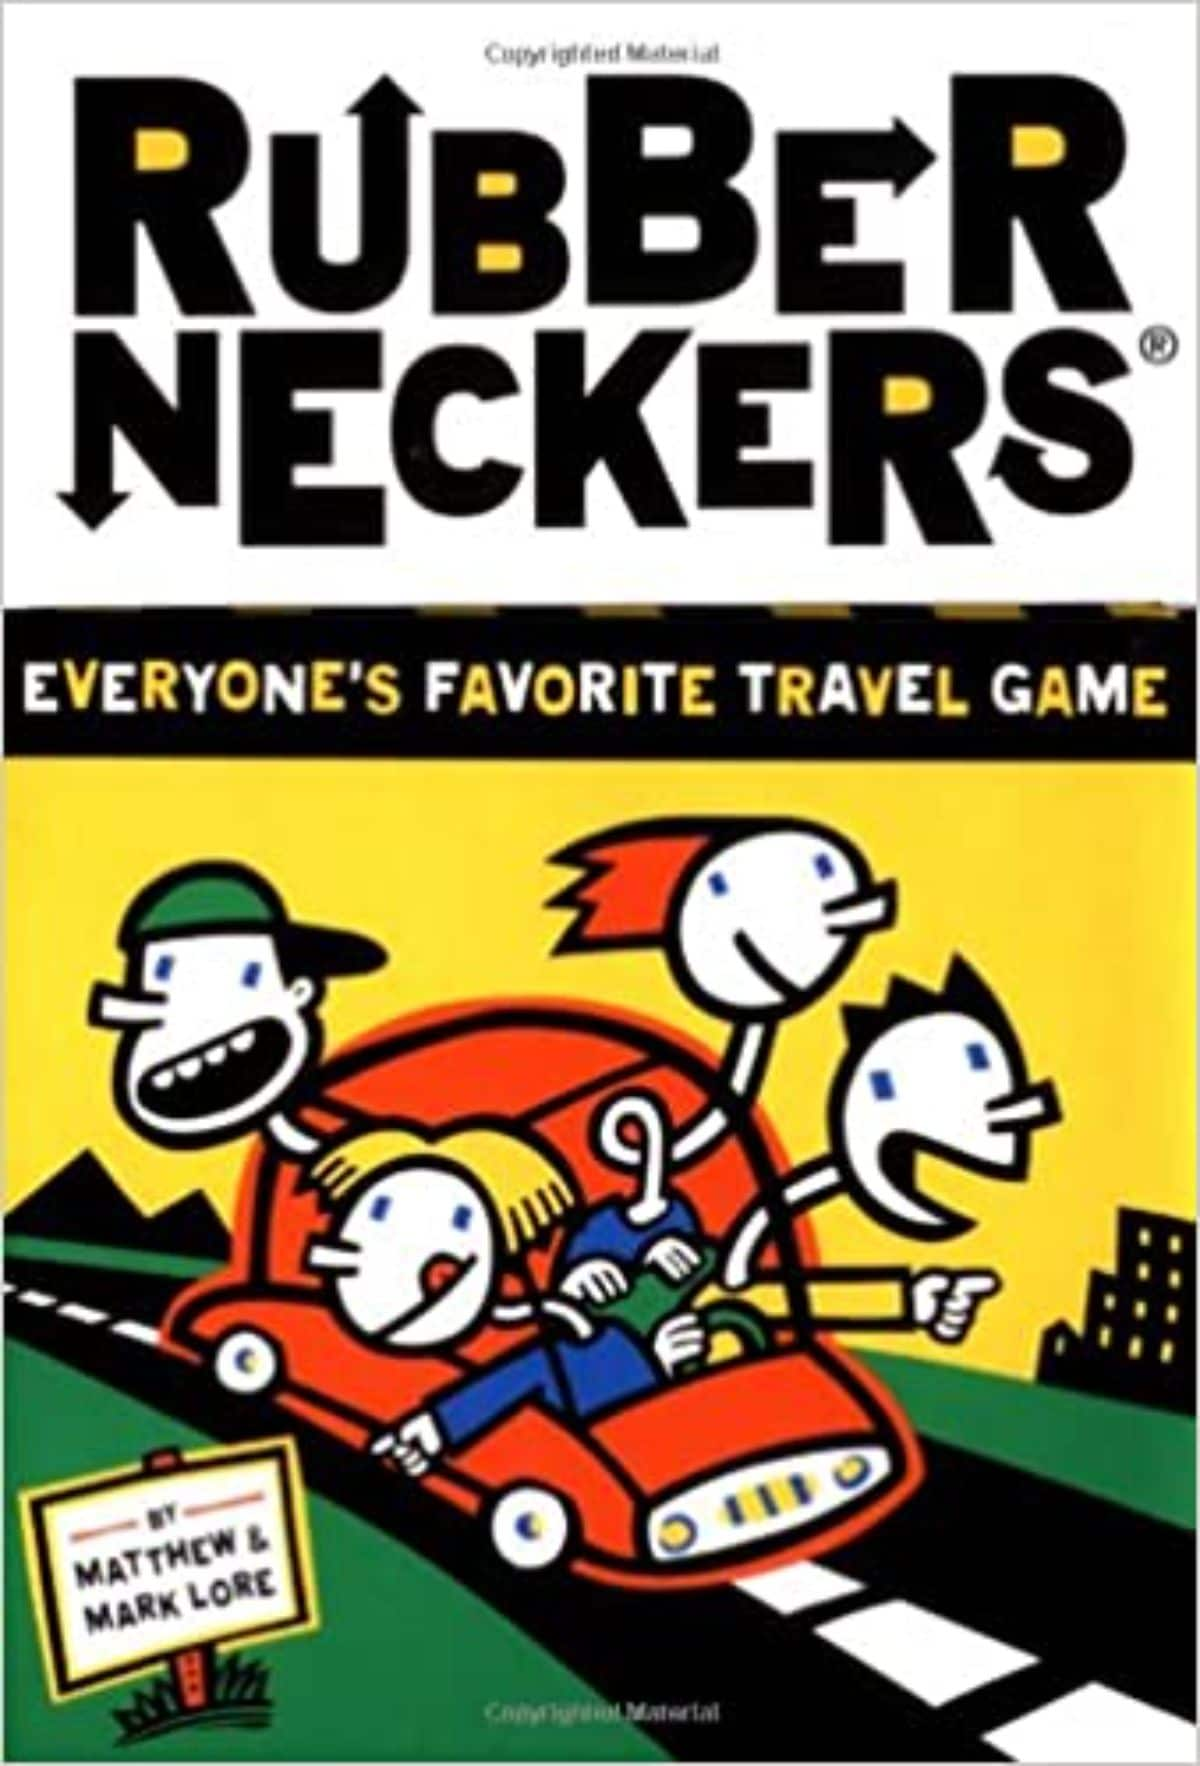 """the front cover of """"Rubberneckers: Everyone's favorite travel game"""" 4 cartoon figures have their heads popping out of a red car driving along a street"""